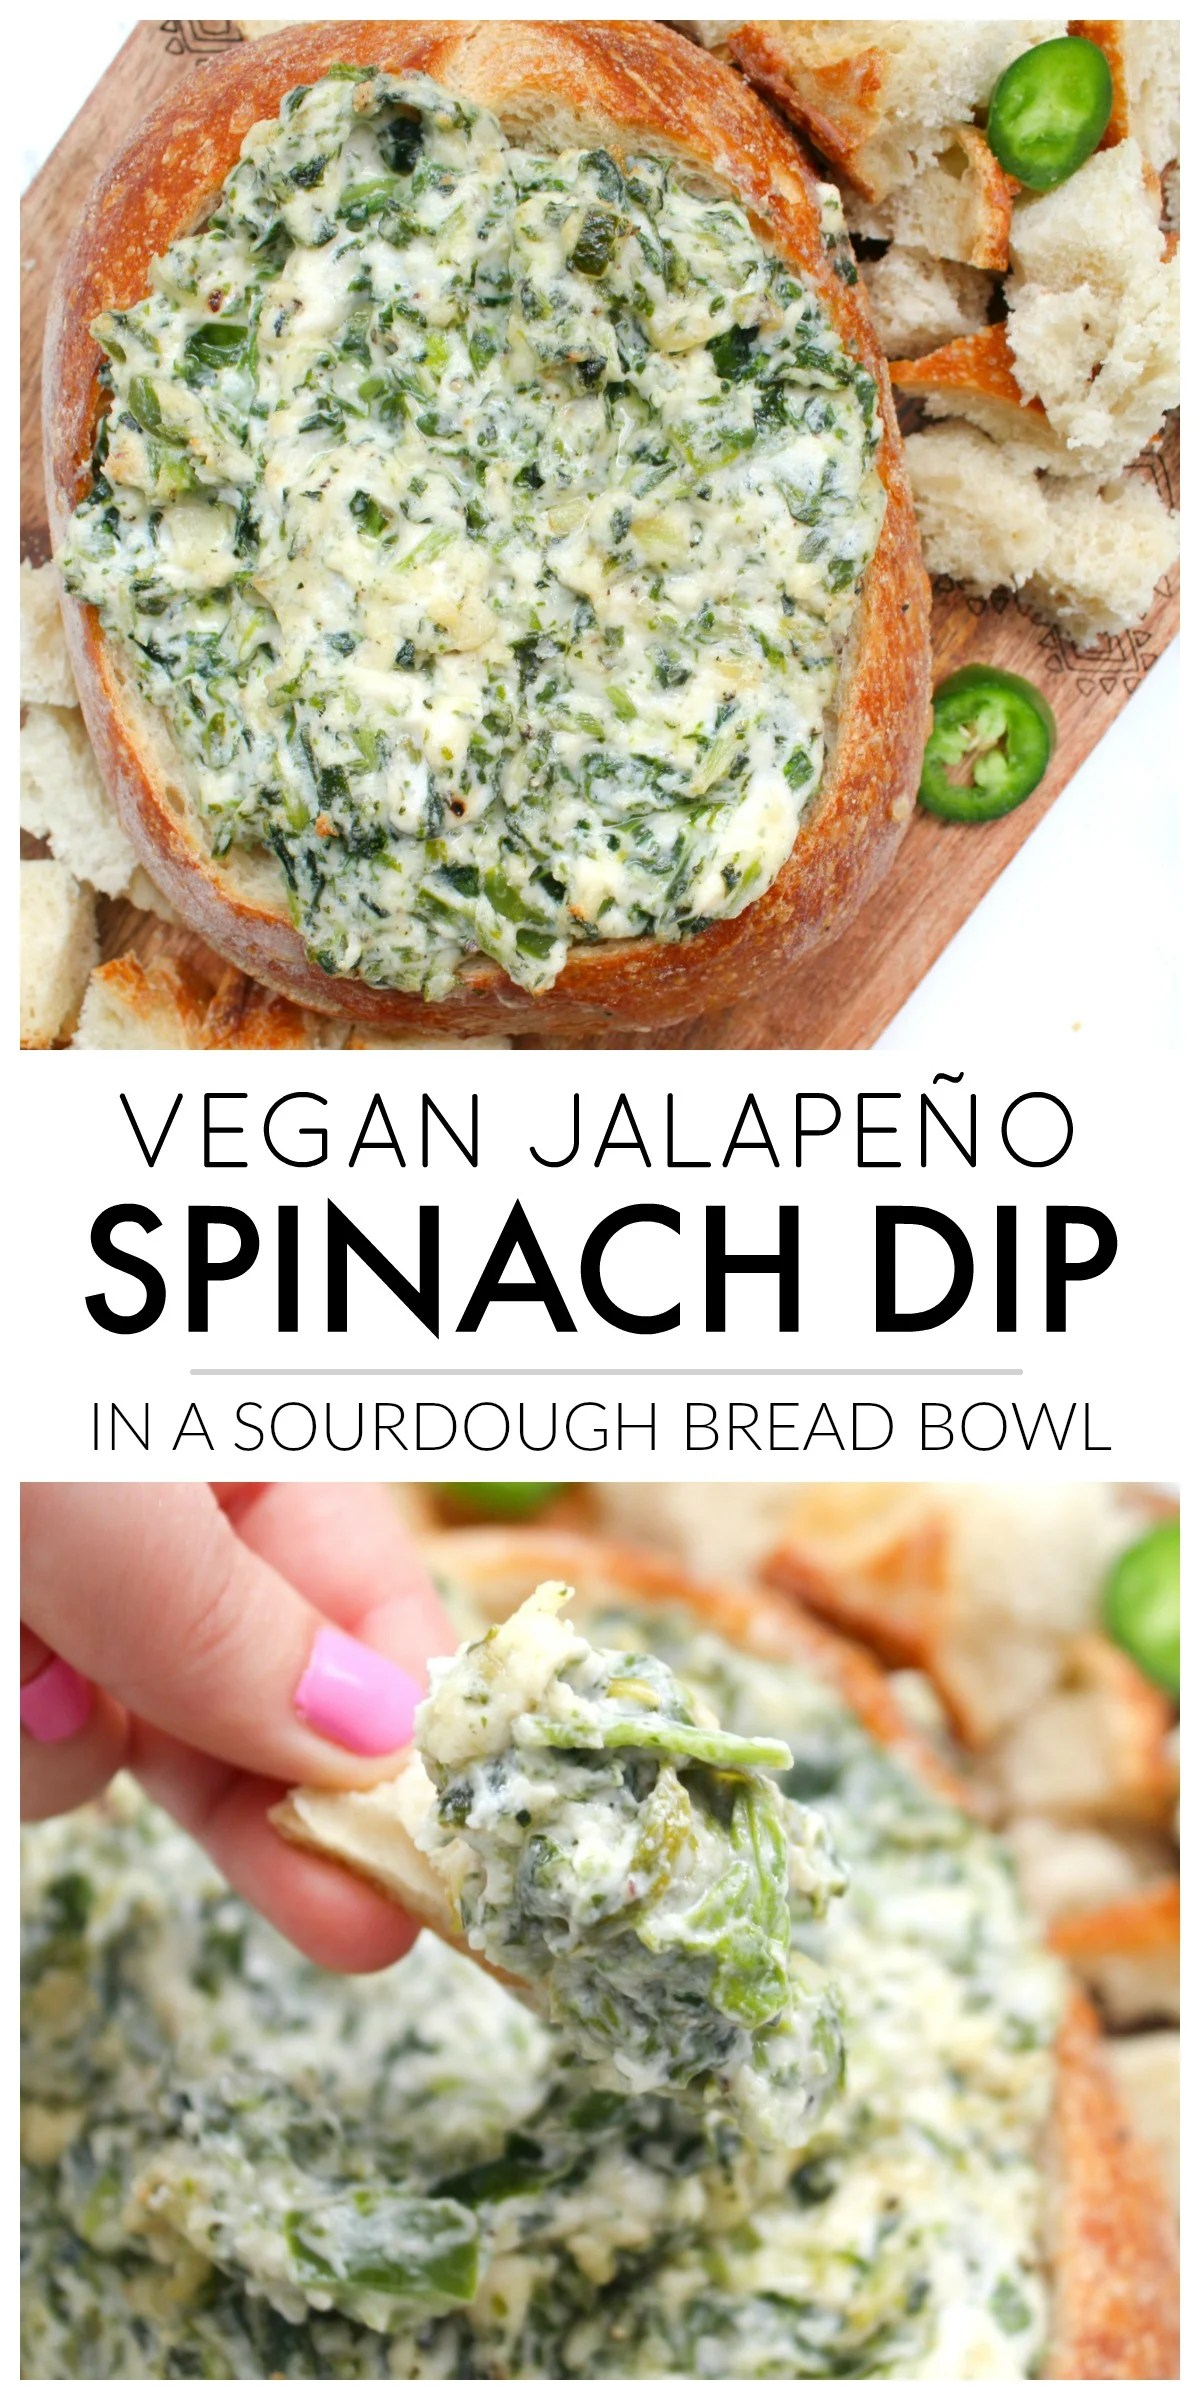 This Vegan Jalapeño Spinach Dip is the perfect game day or party snack. No one will ever know this creamy deliciousness is even vegan | ThisSavoryVegan.com #thissavoryvegan #veganspinachdip